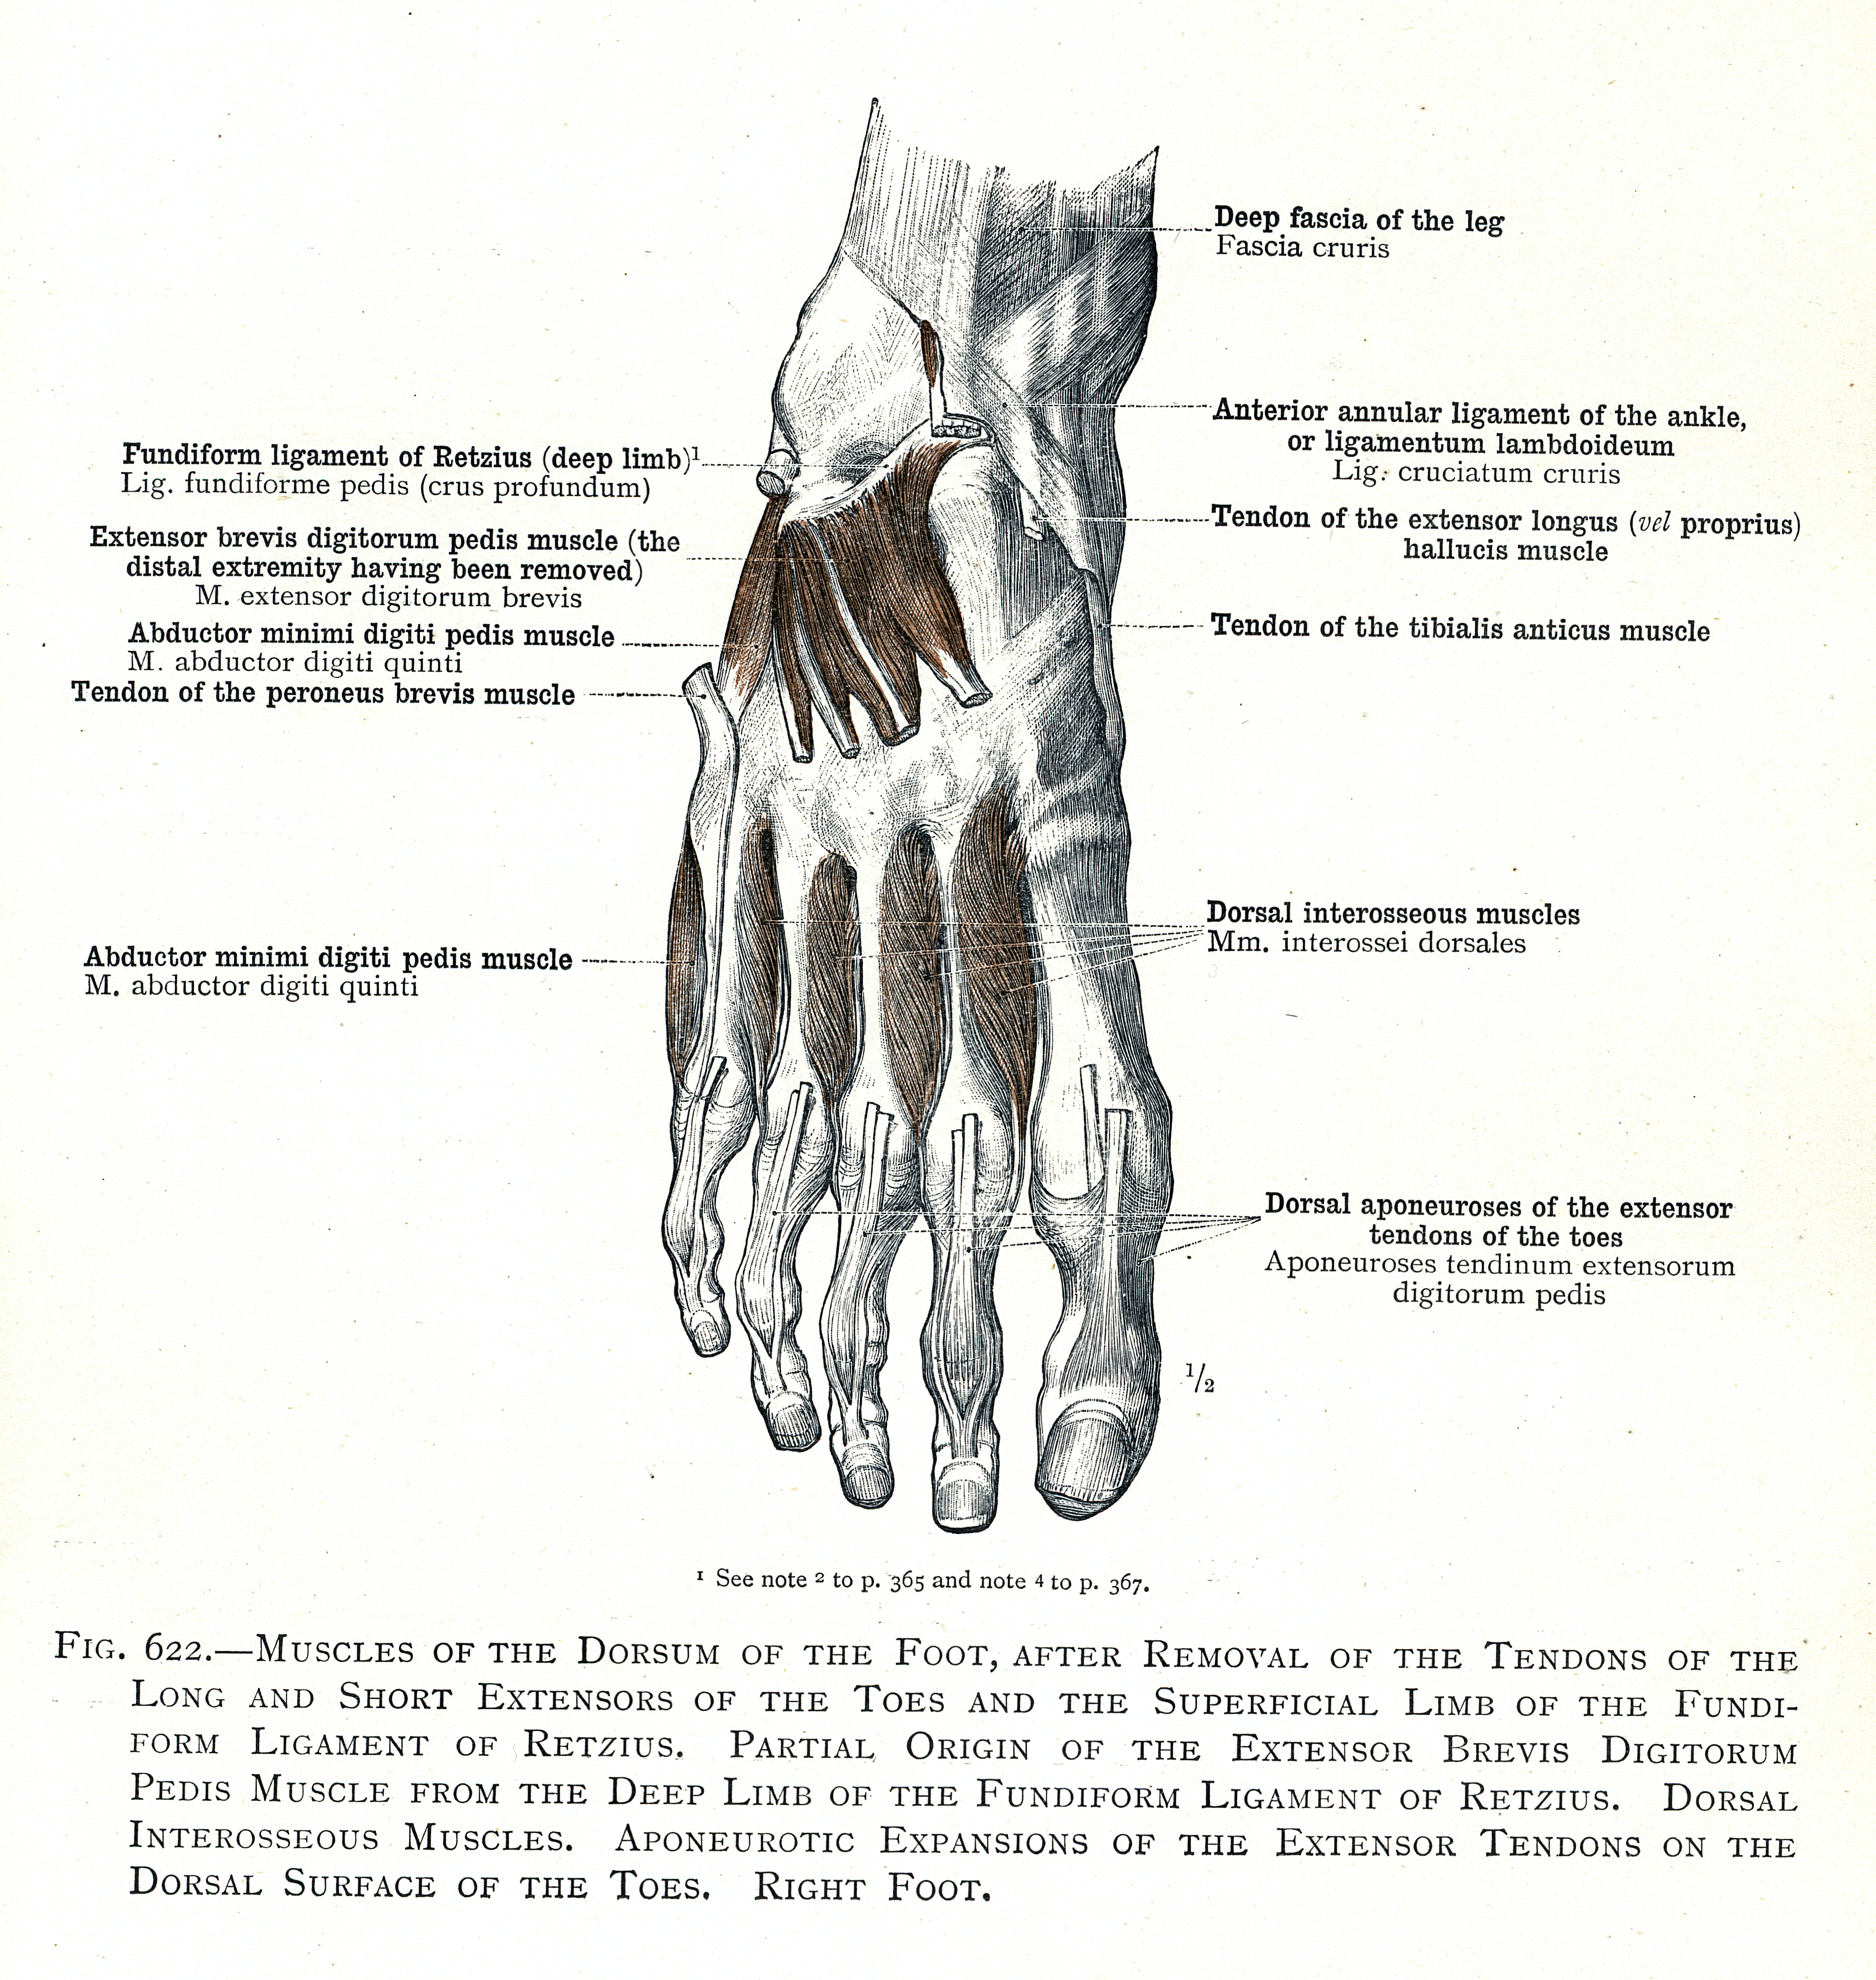 622. muscles of the dorsum of the foot. partial origin of the, Cephalic Vein